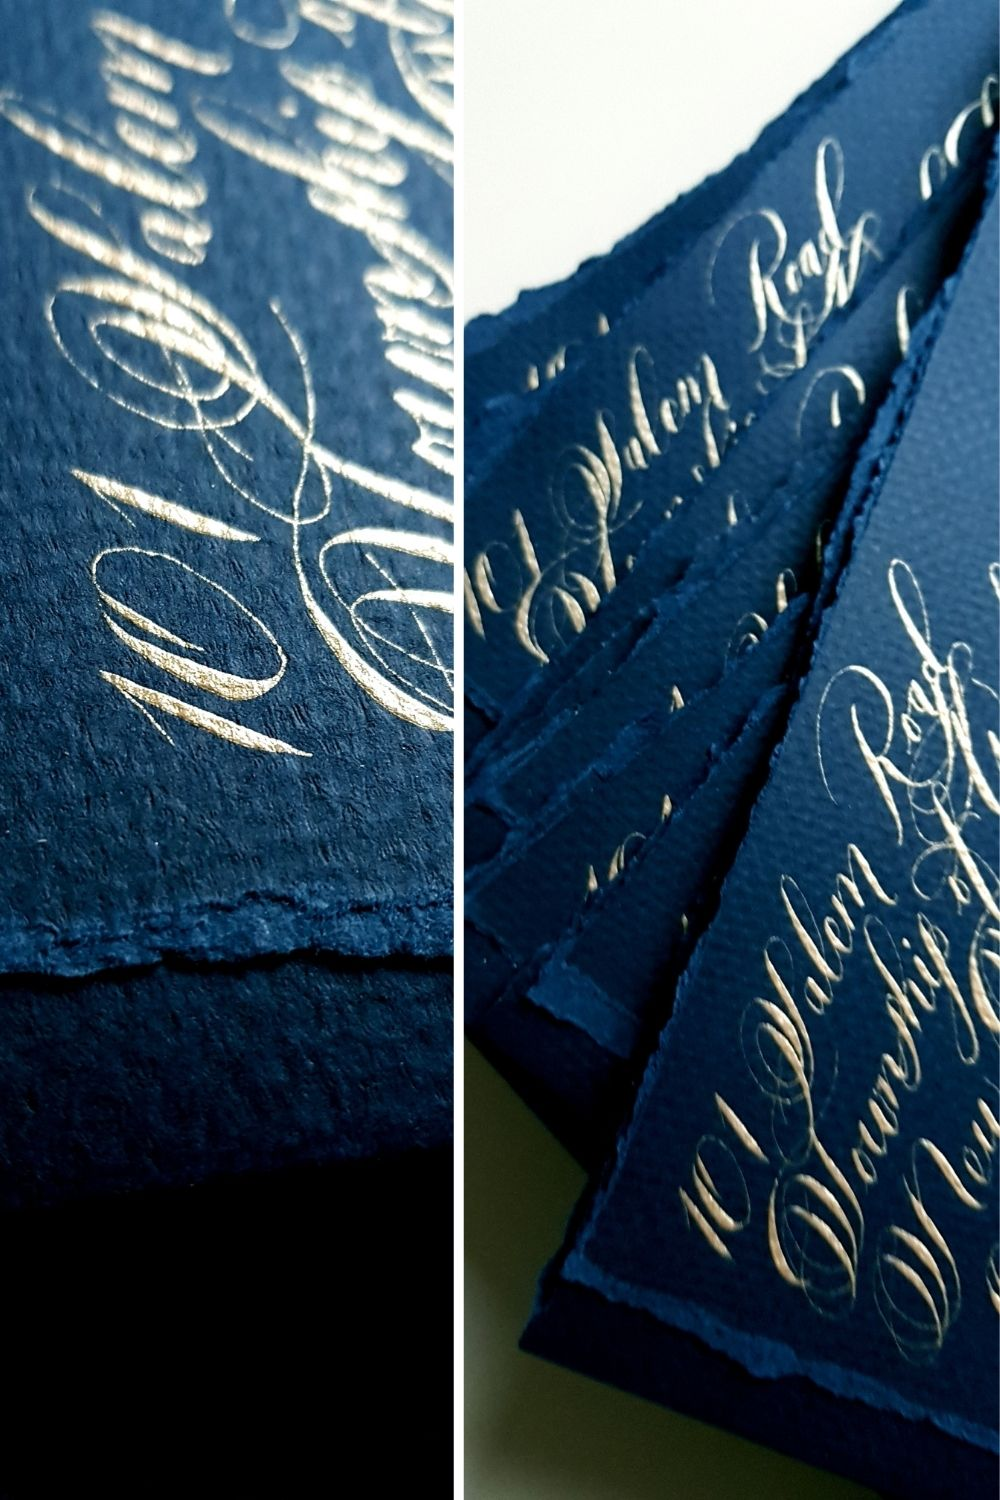 Fine art wedding invitations with navy blue and gold calligraphy